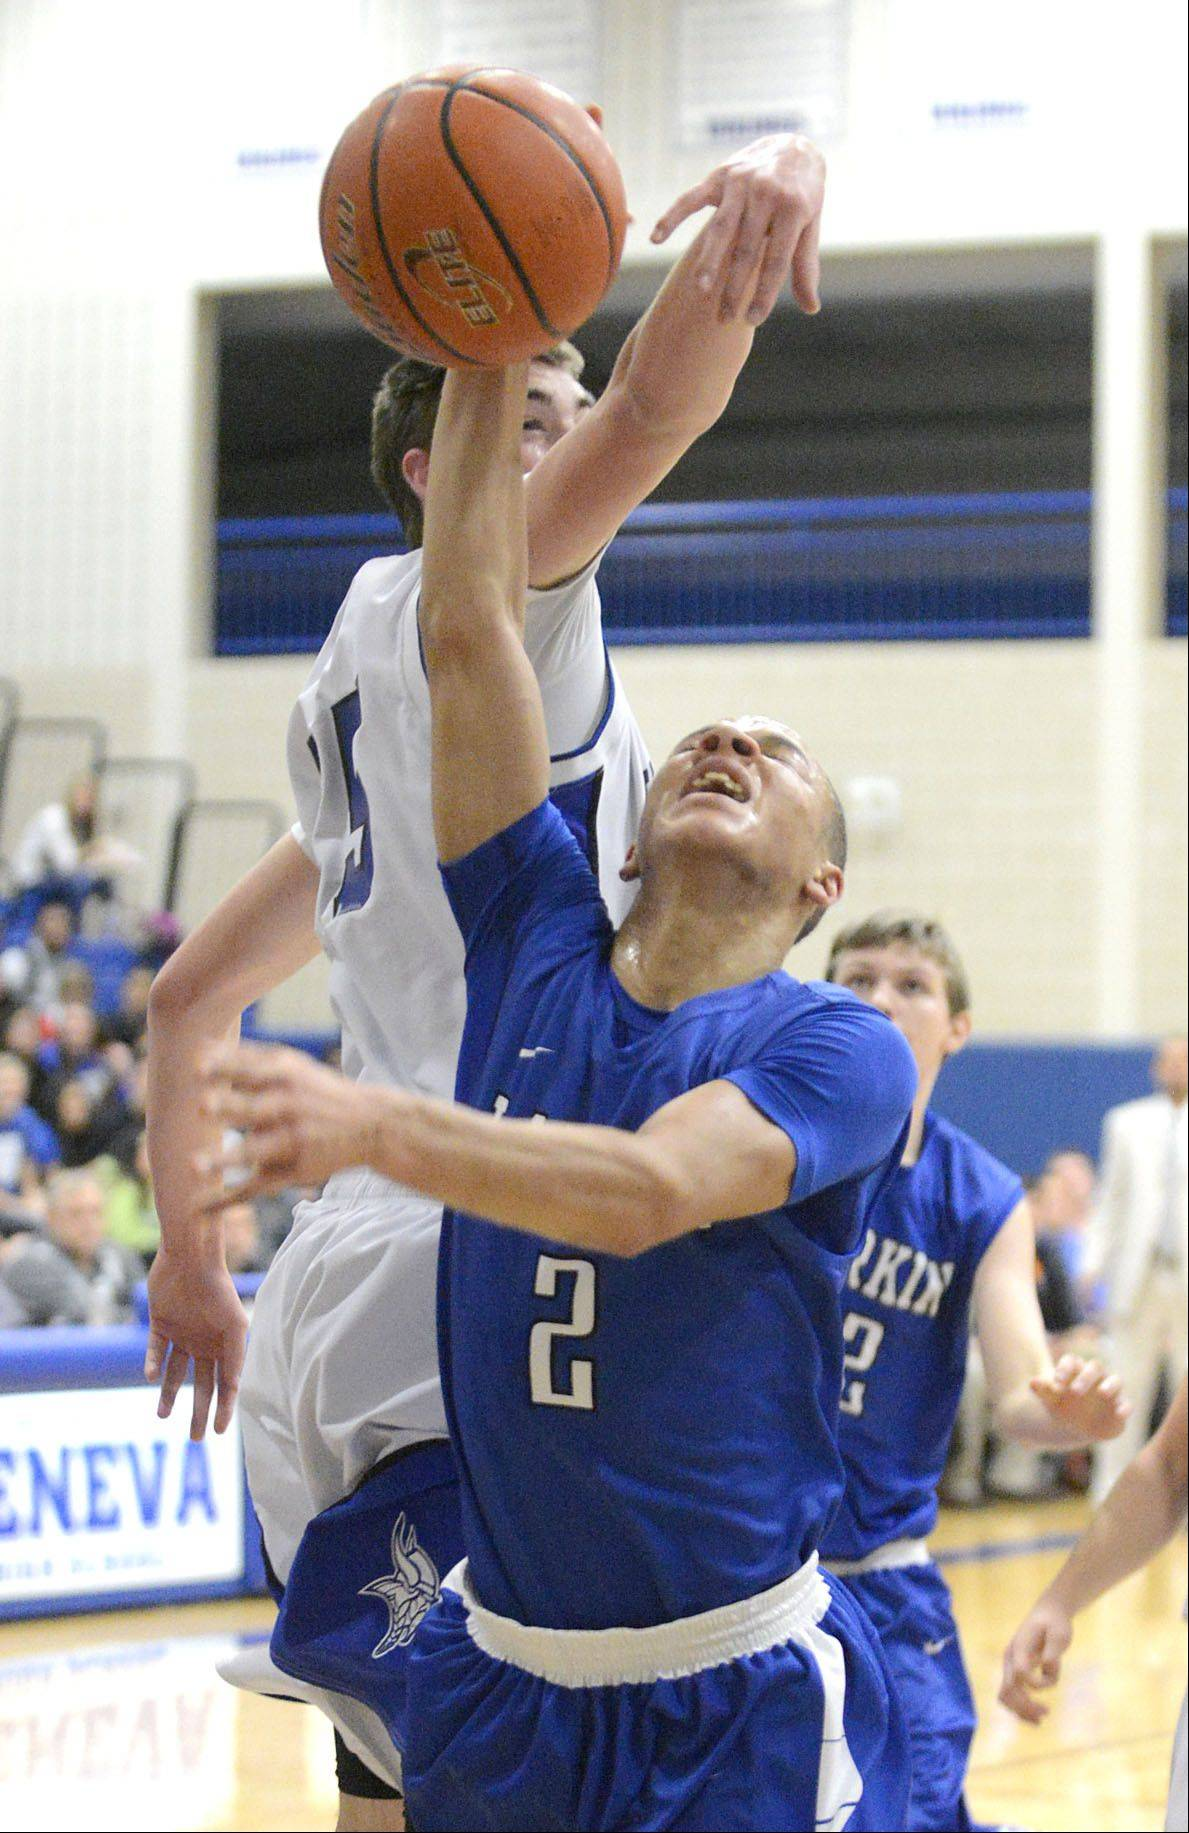 Geneva's Nate Navigato denies Larkin's Derrick Streety a basket in the first quarter on Friday, December 20.